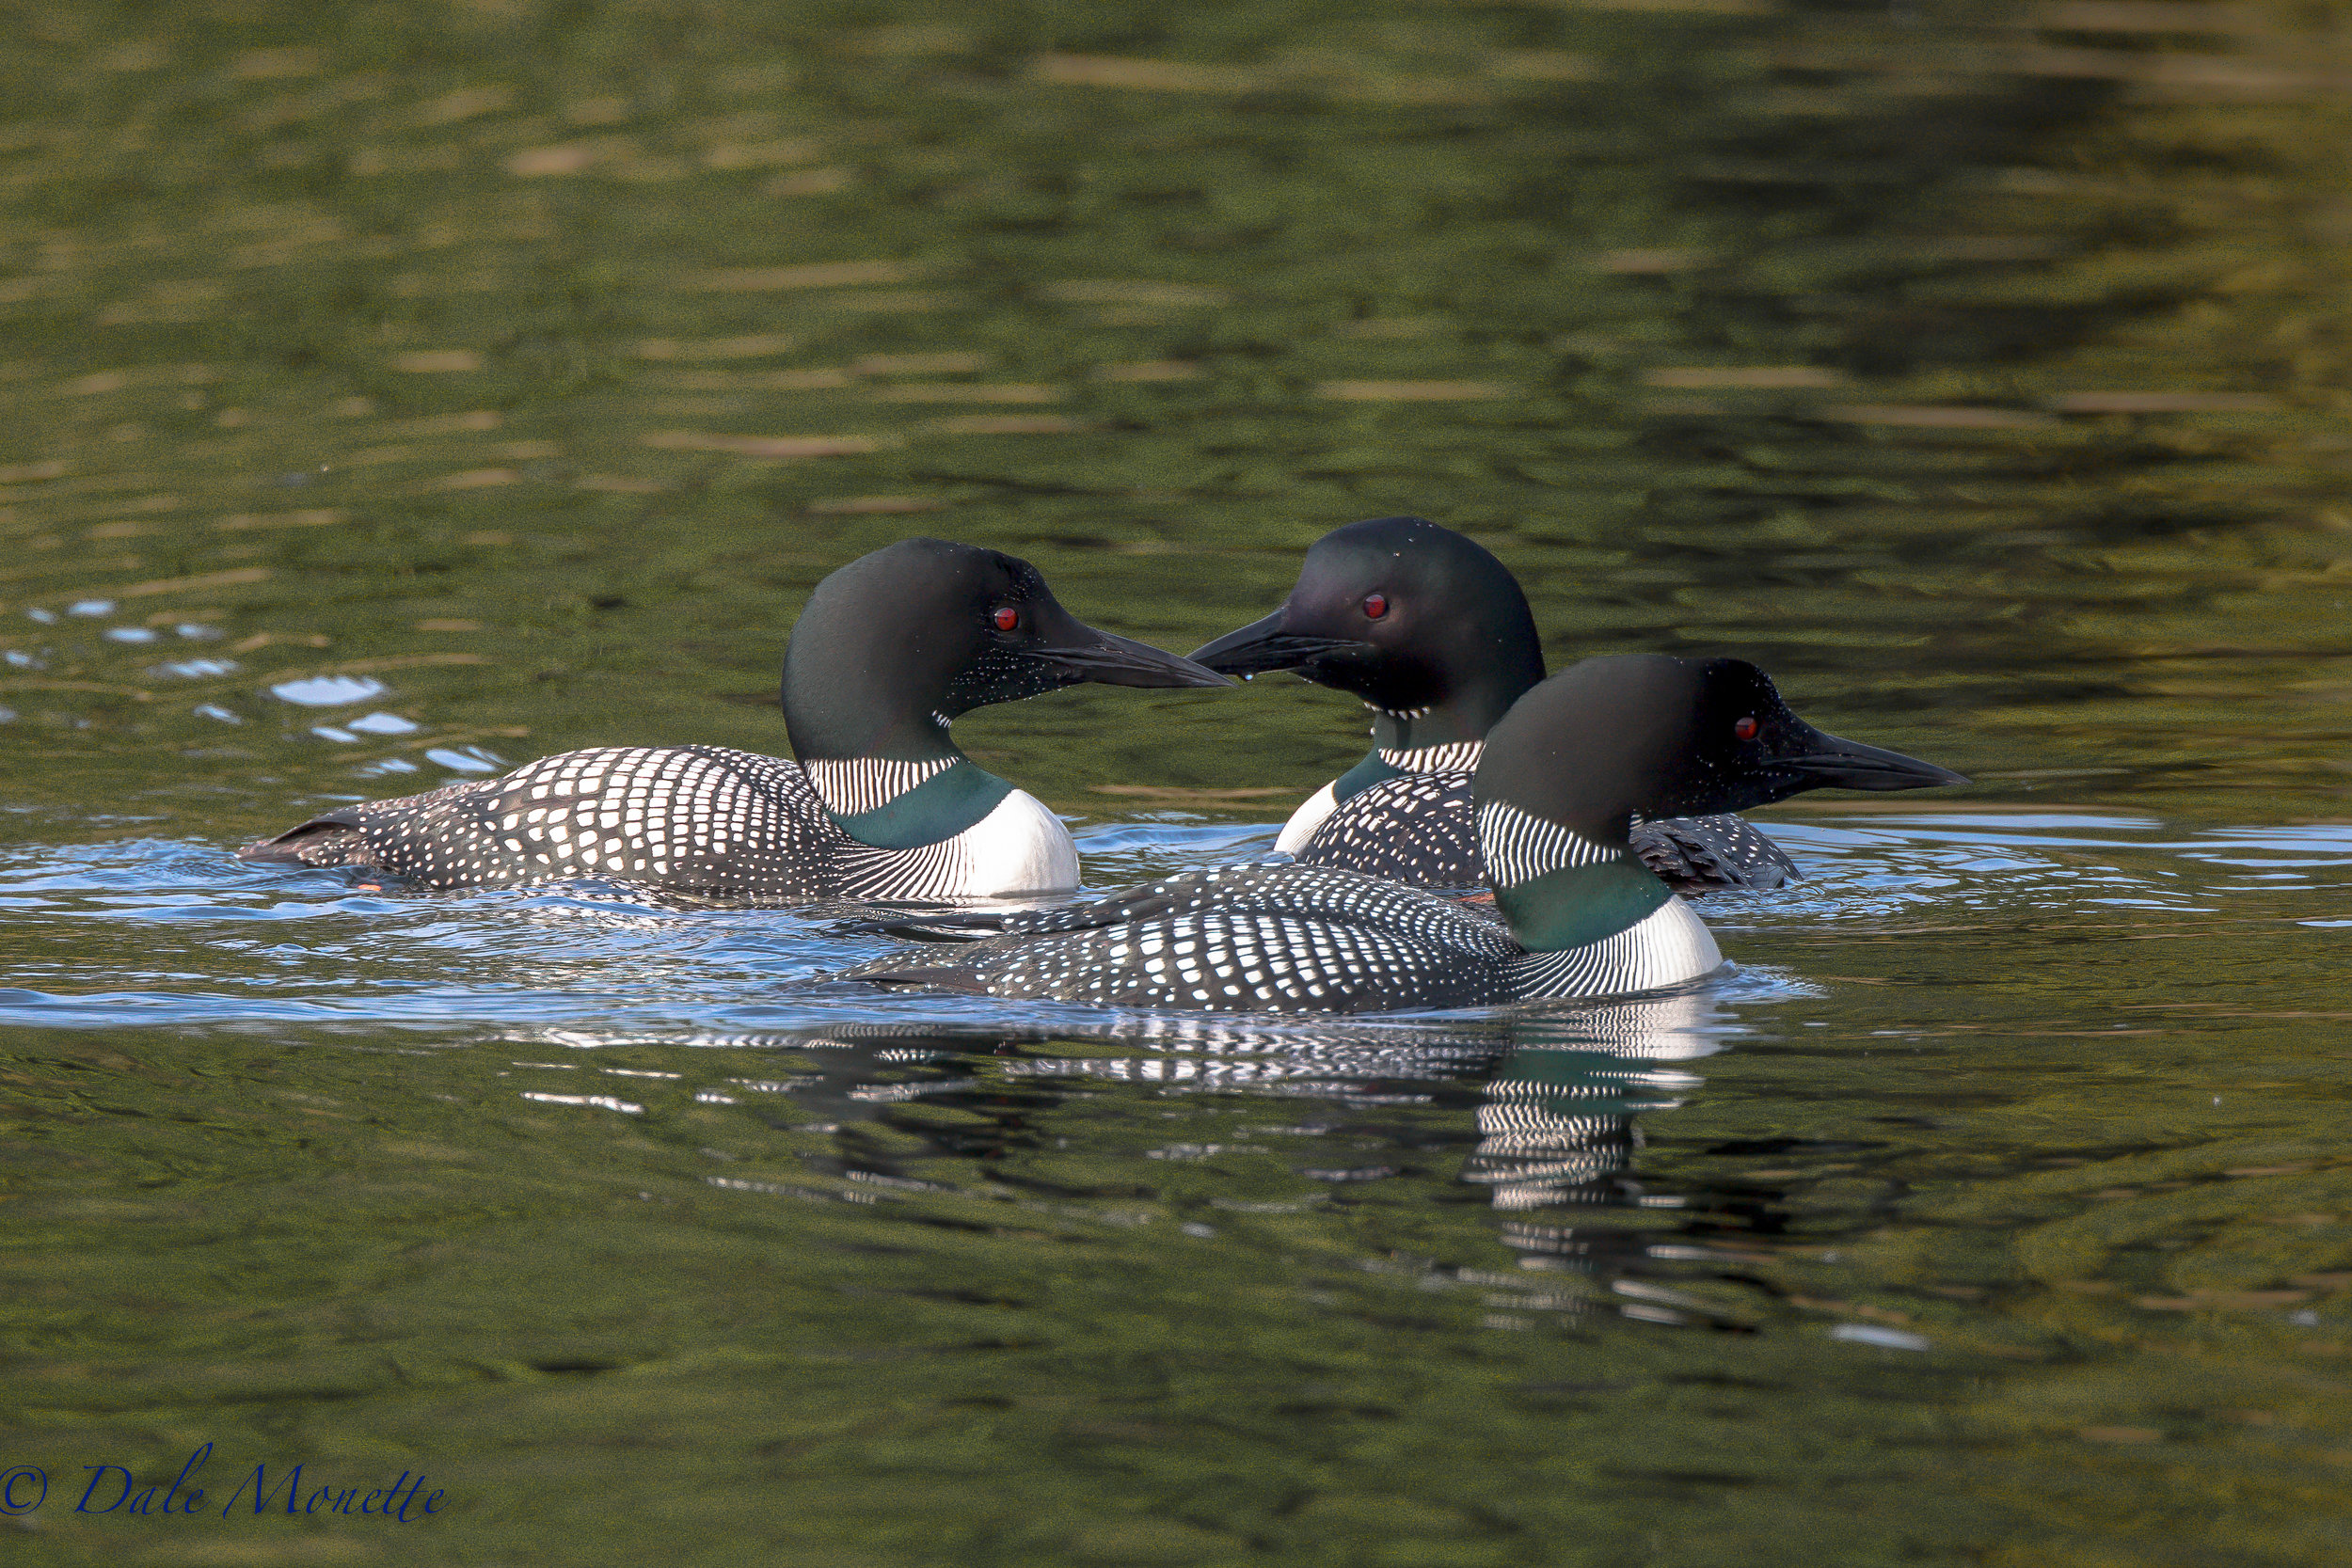 The second week of loon surveys found these three loons just hanging out and fishing together on a warm, calm, late spring afternoon. I love these birds!